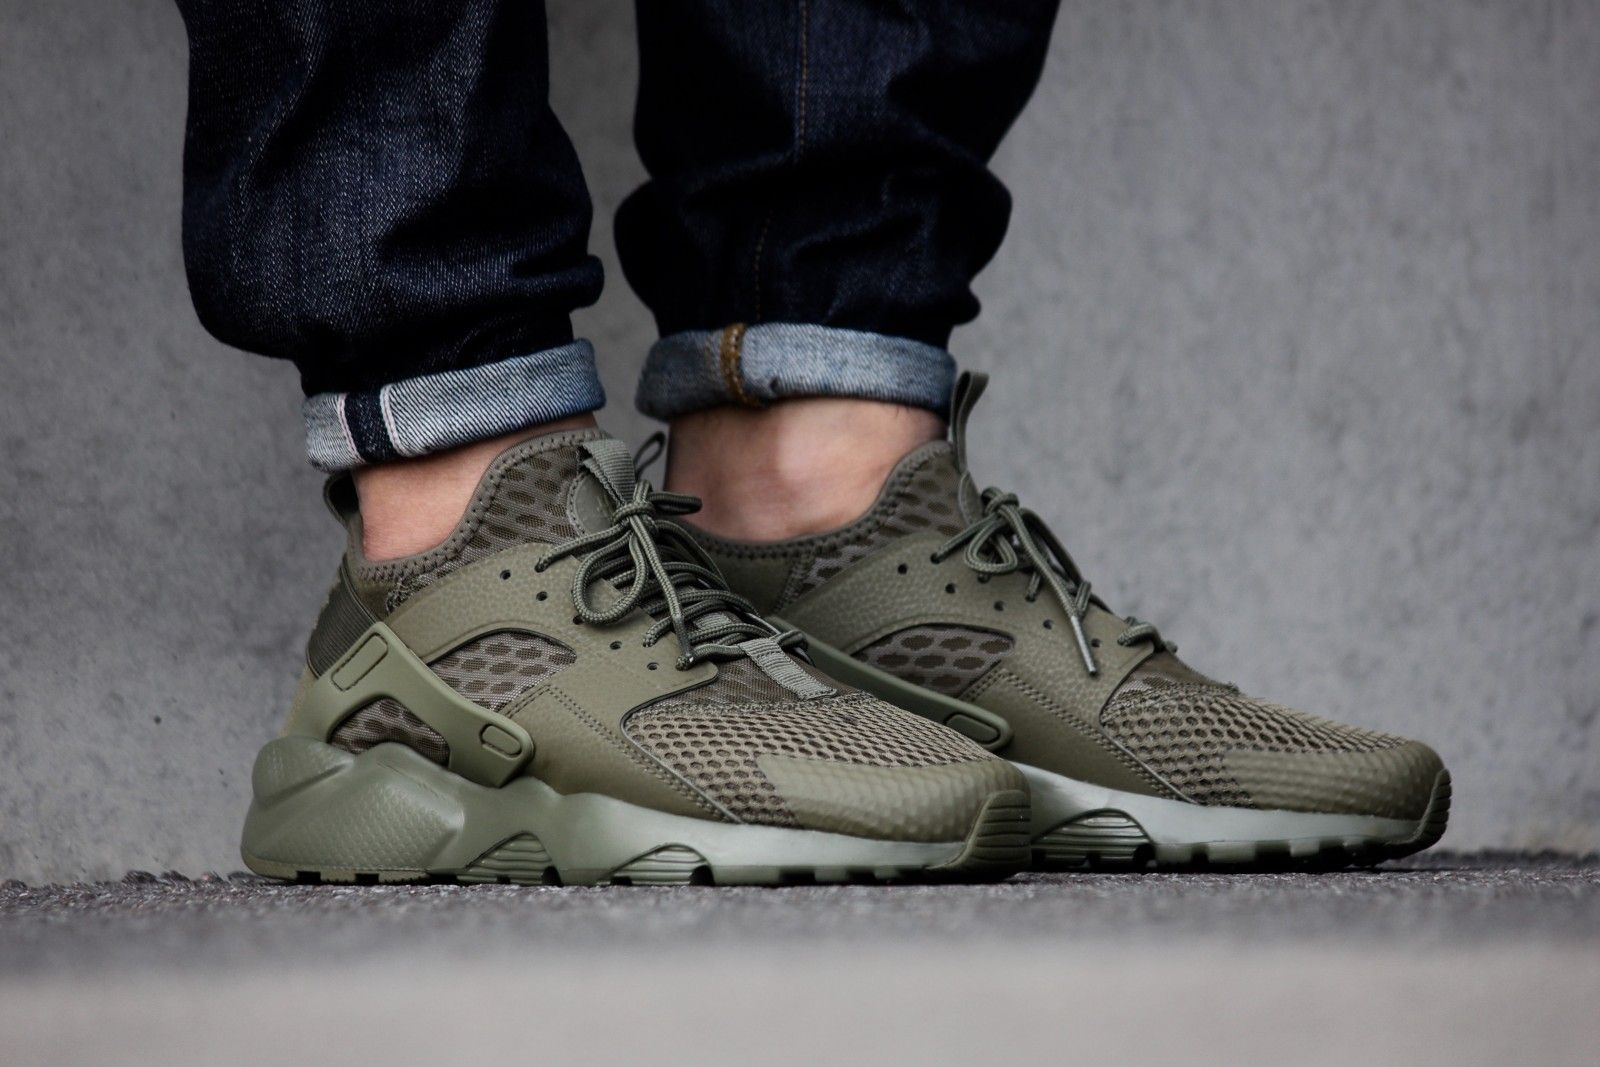 7f4e06ee6d182 Nike Air Huarache Ultra BR Medium Olive - 833147-200